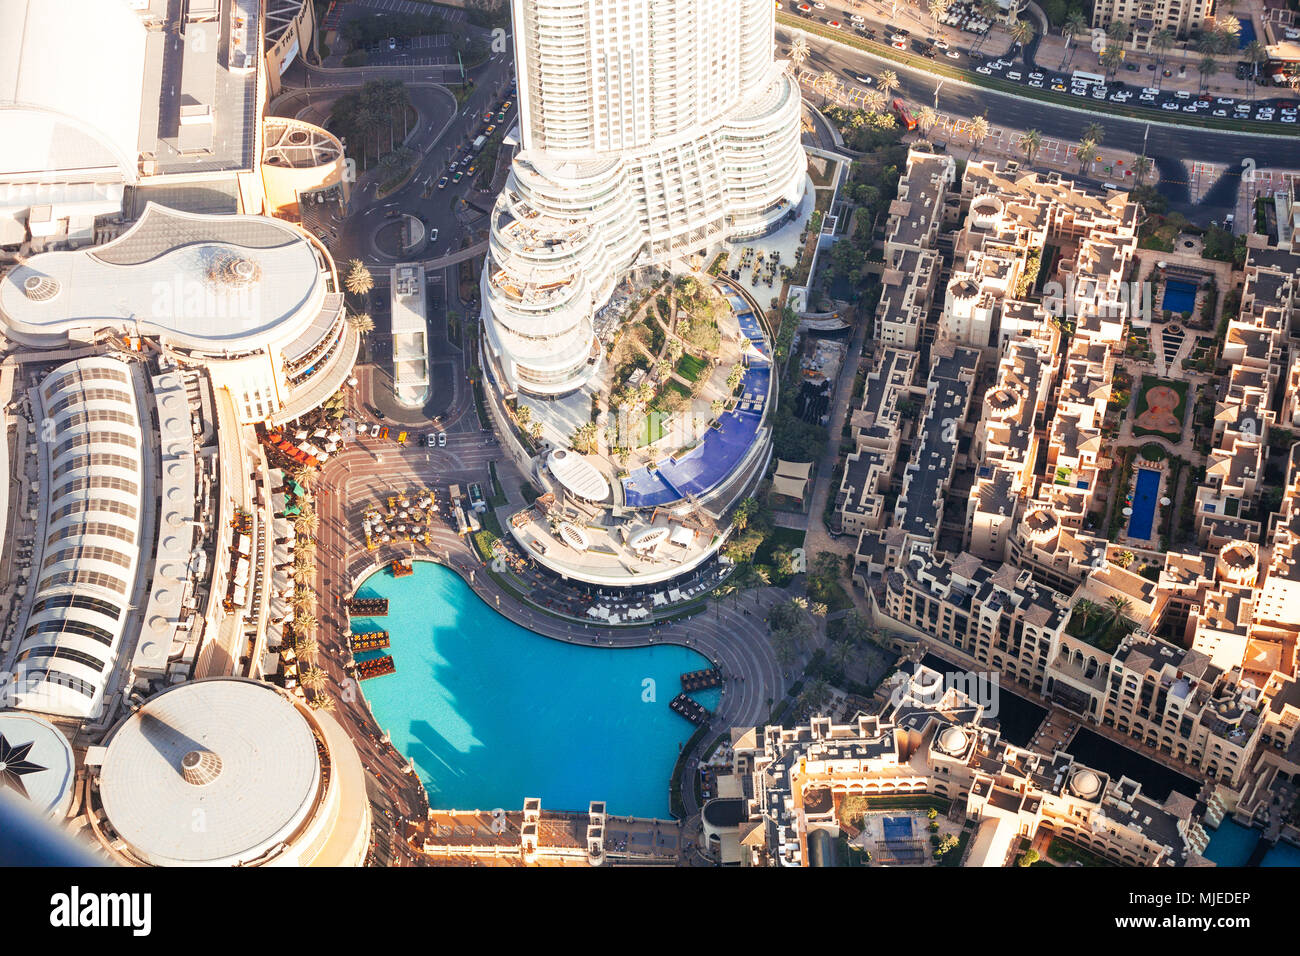 Dubai mall and fountain from above - Stock Image